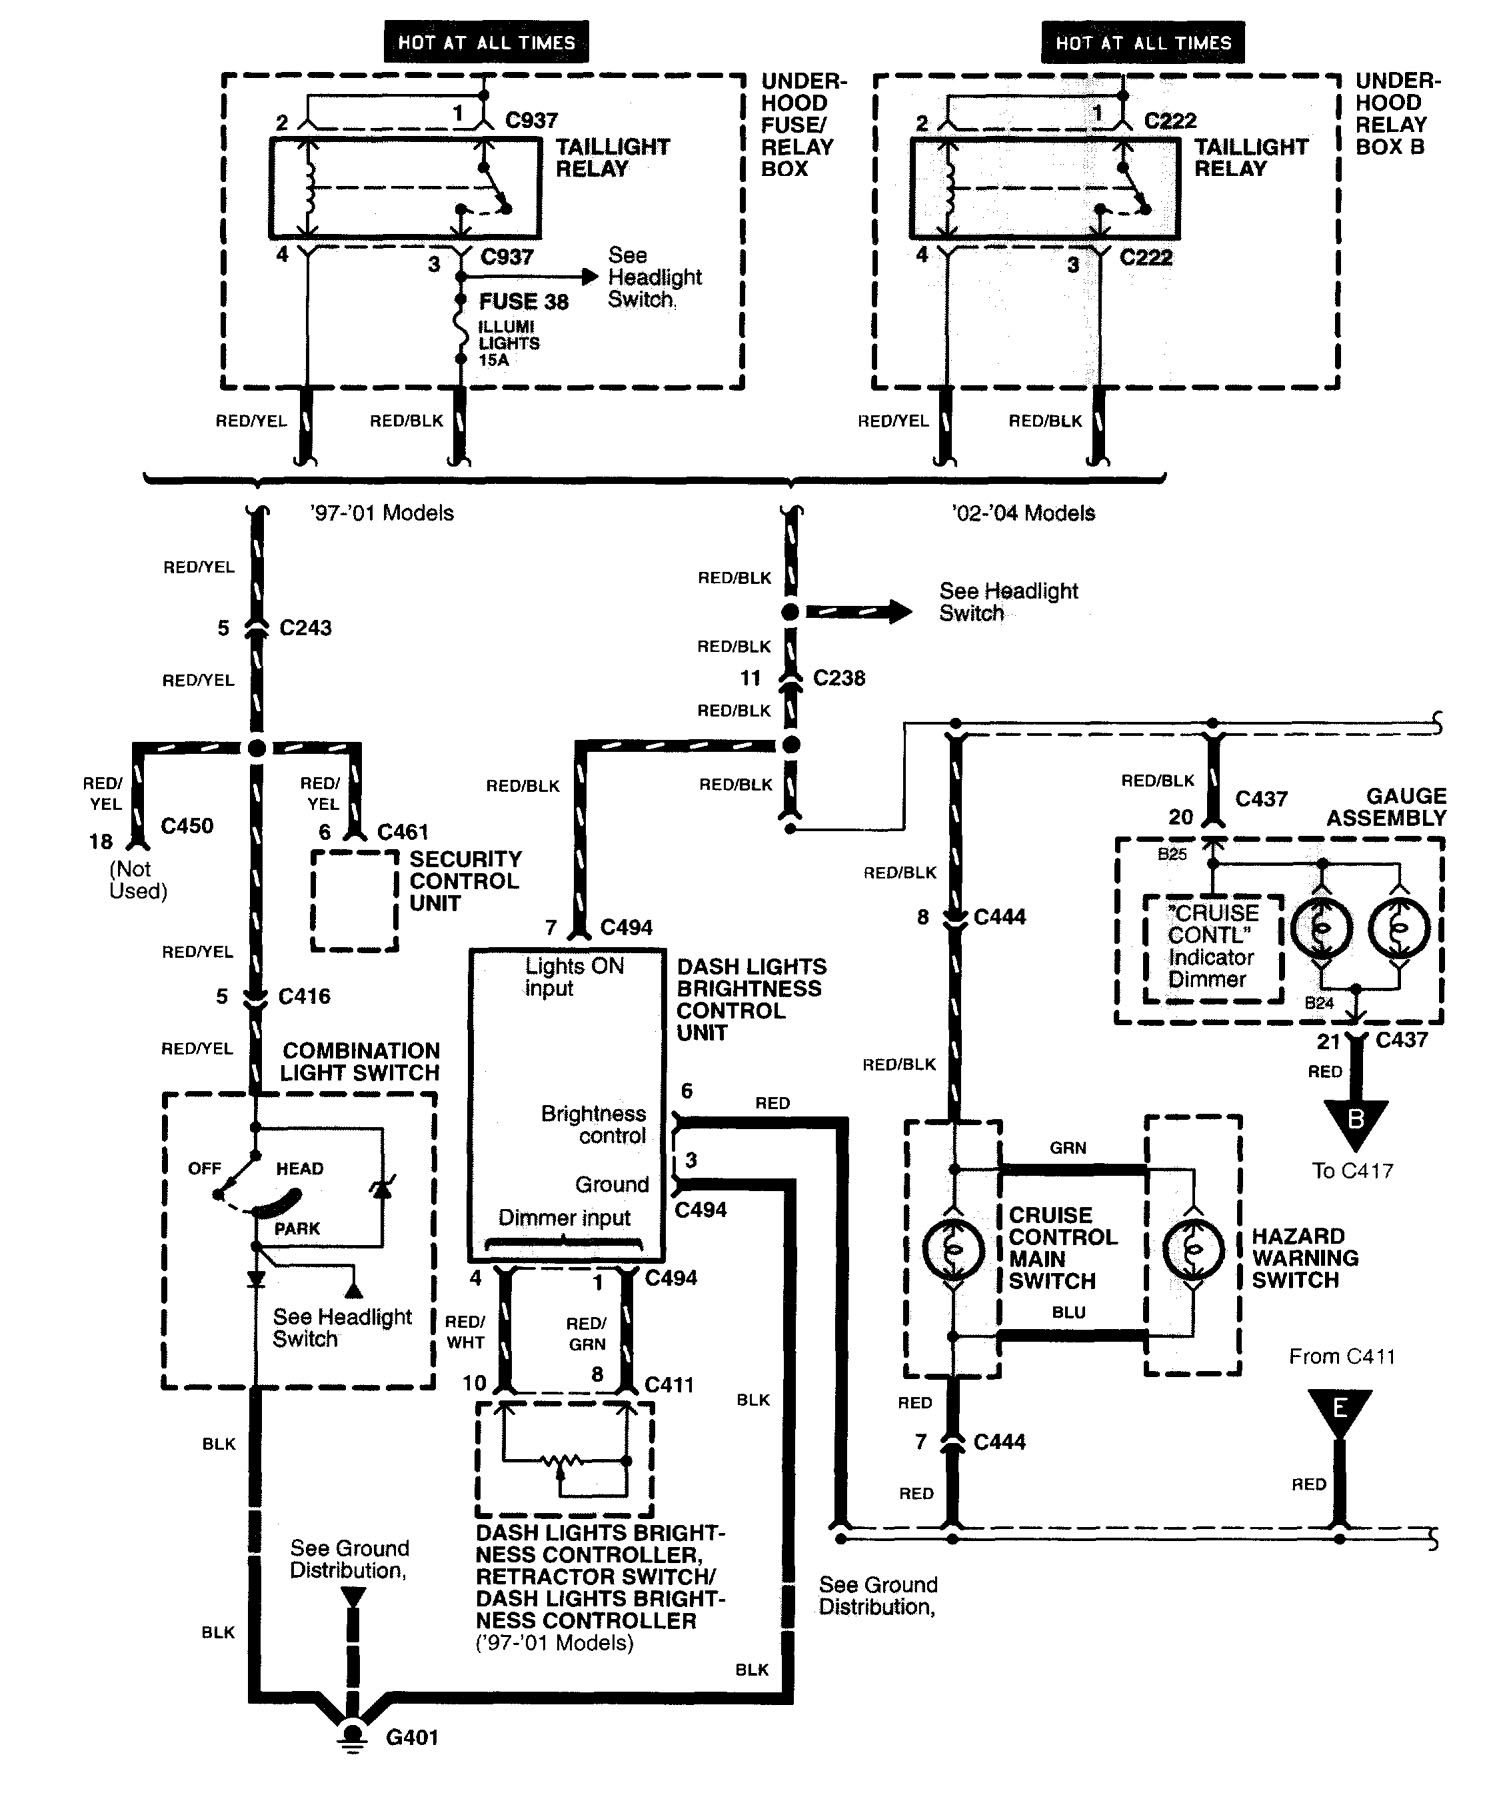 2004 Honda Civic Stereo Wiring Diagram from www.carknowledge.info